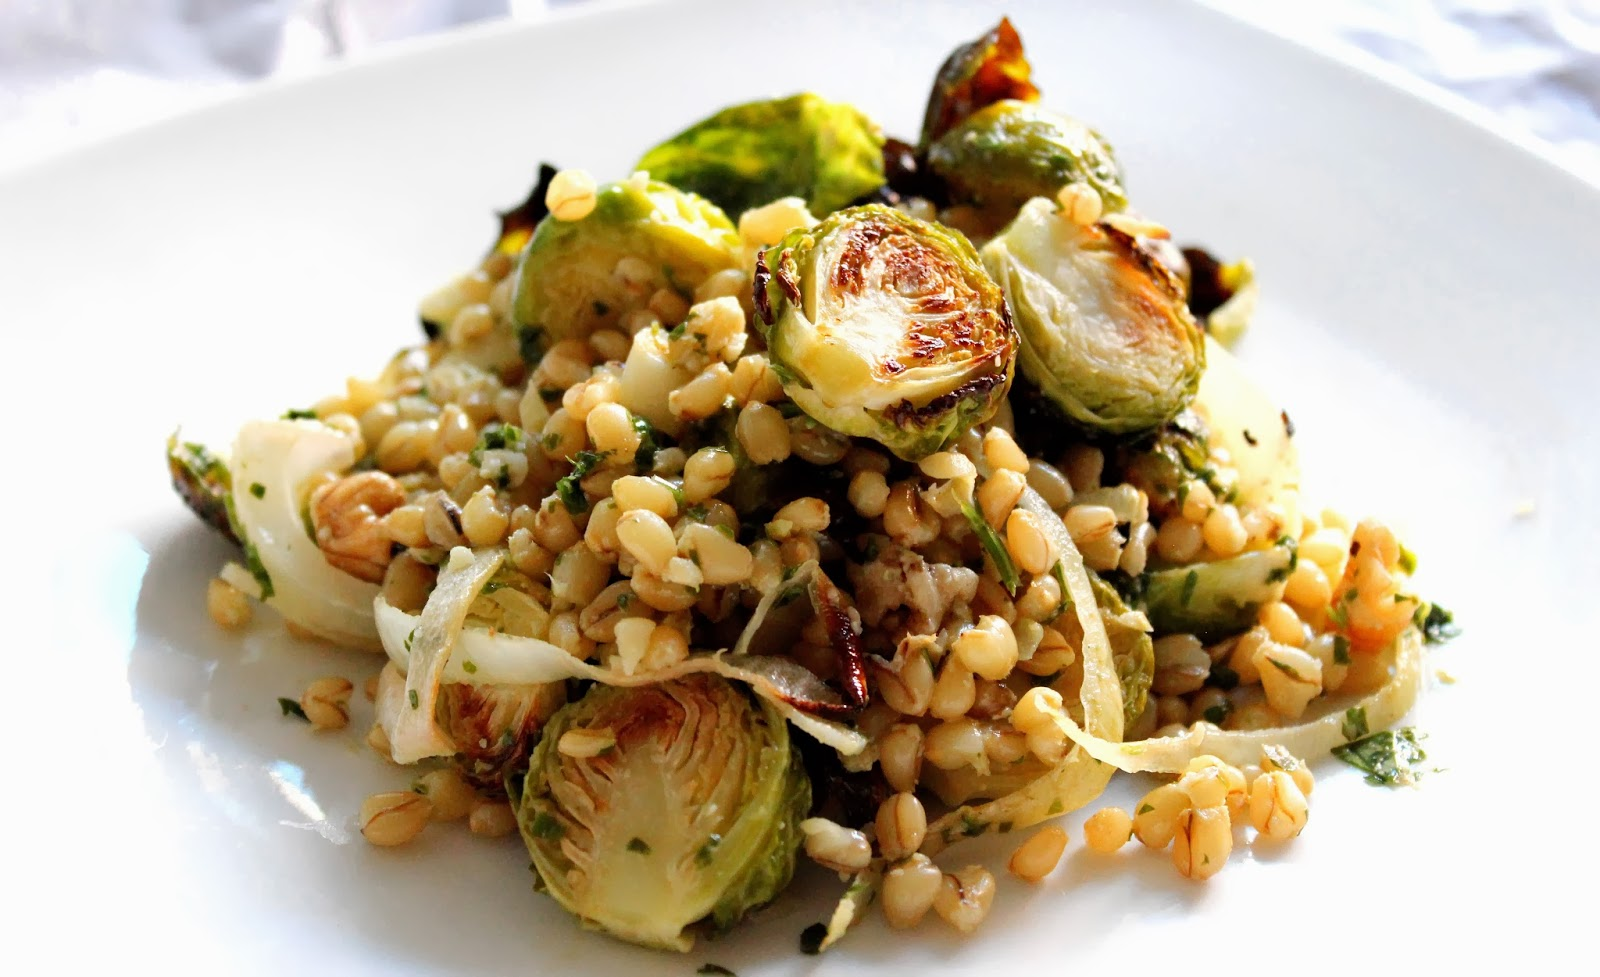 ... Roasted Brussel Sprouts & Wheatberries with a Parsley-Walnut-Lemon Oil